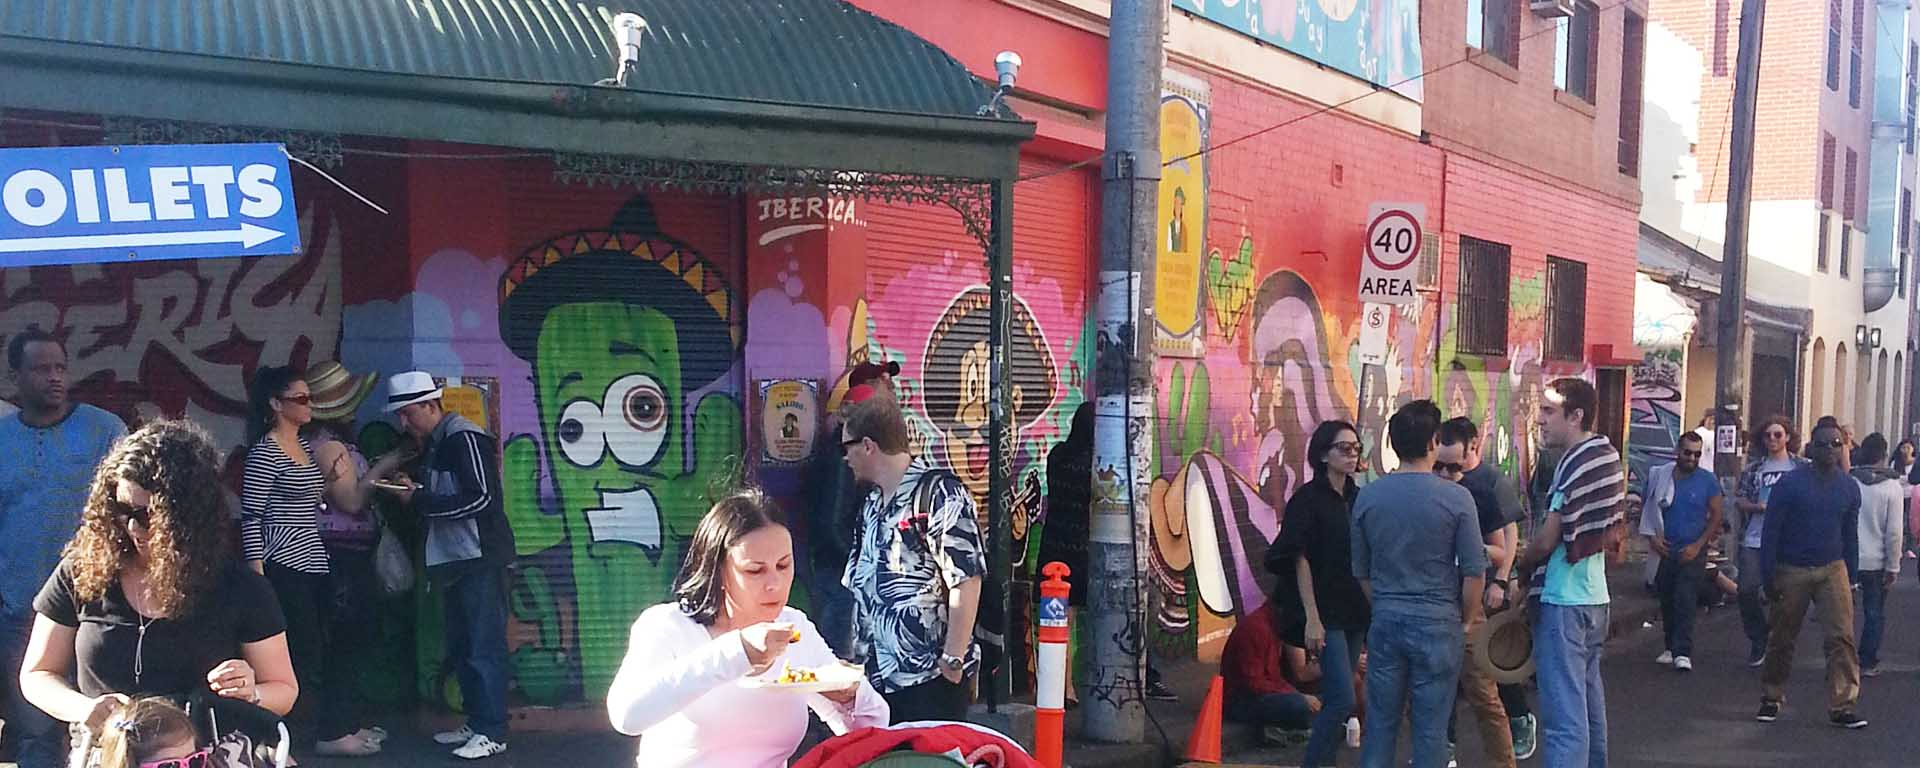 People eat food and chat on Johnston Street during the Hispanic Latin American Festival, Melbourne